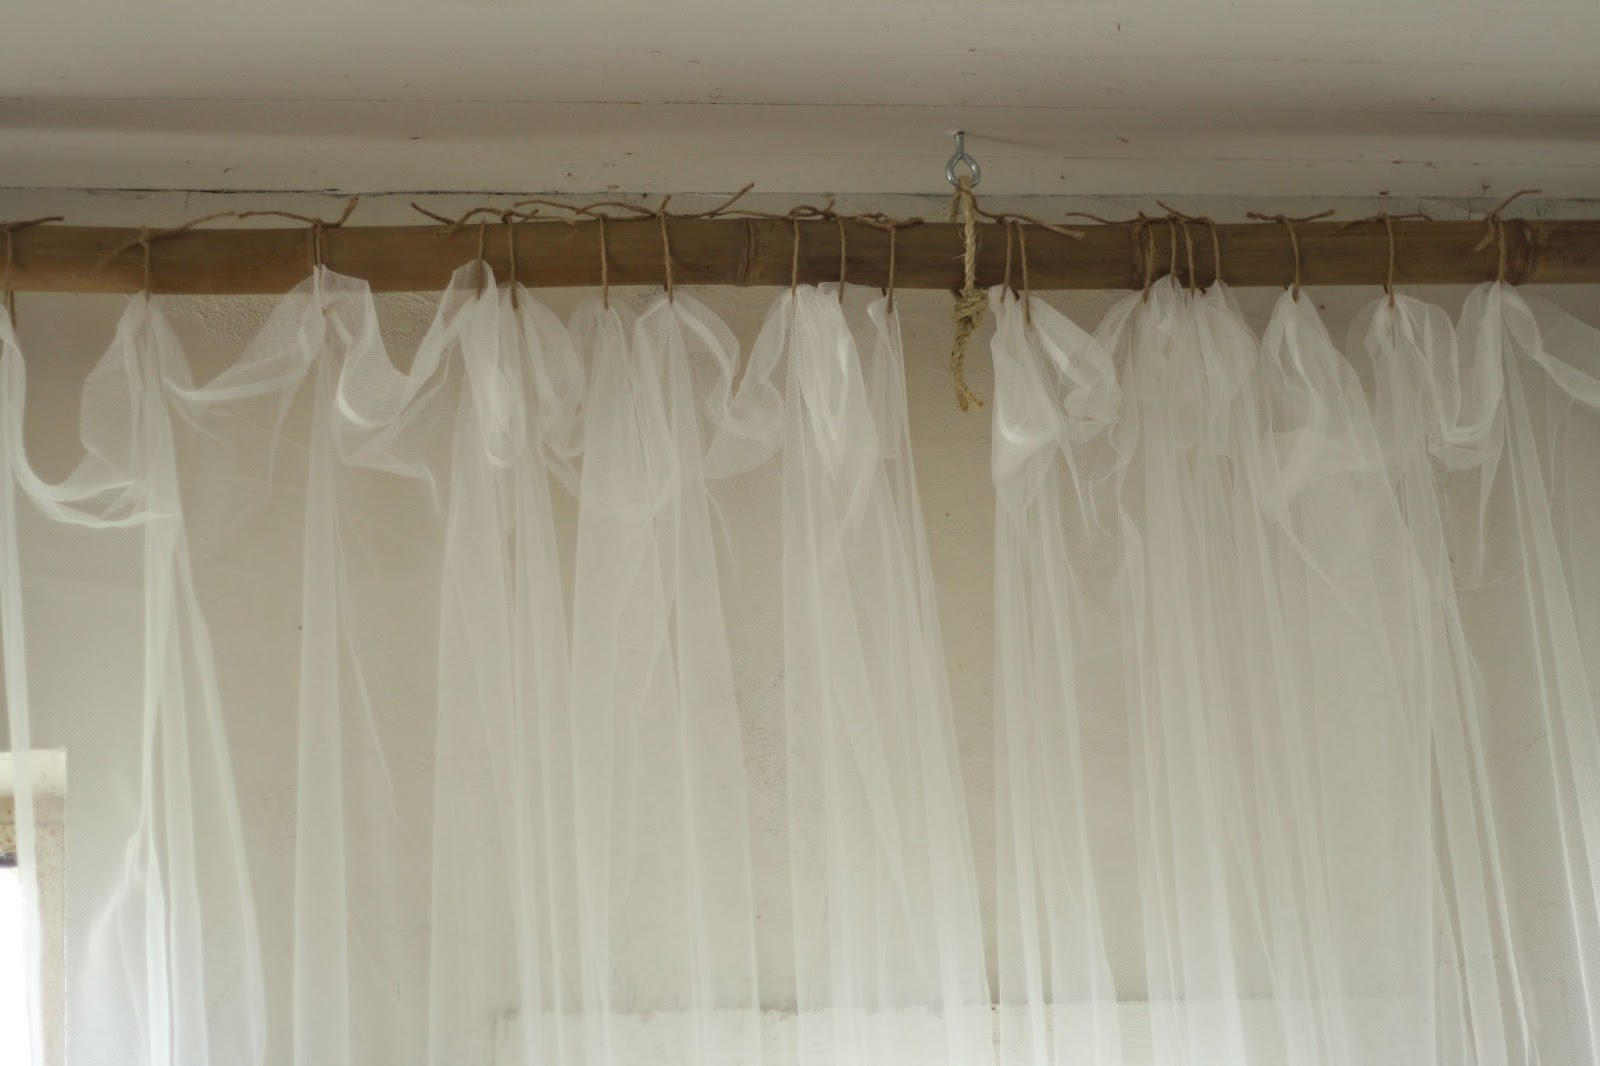 Unique curtain hanging ideas - Primitive And Proper Jute Rope And Bamboo Curtain Hanging System Via Remodelaholic